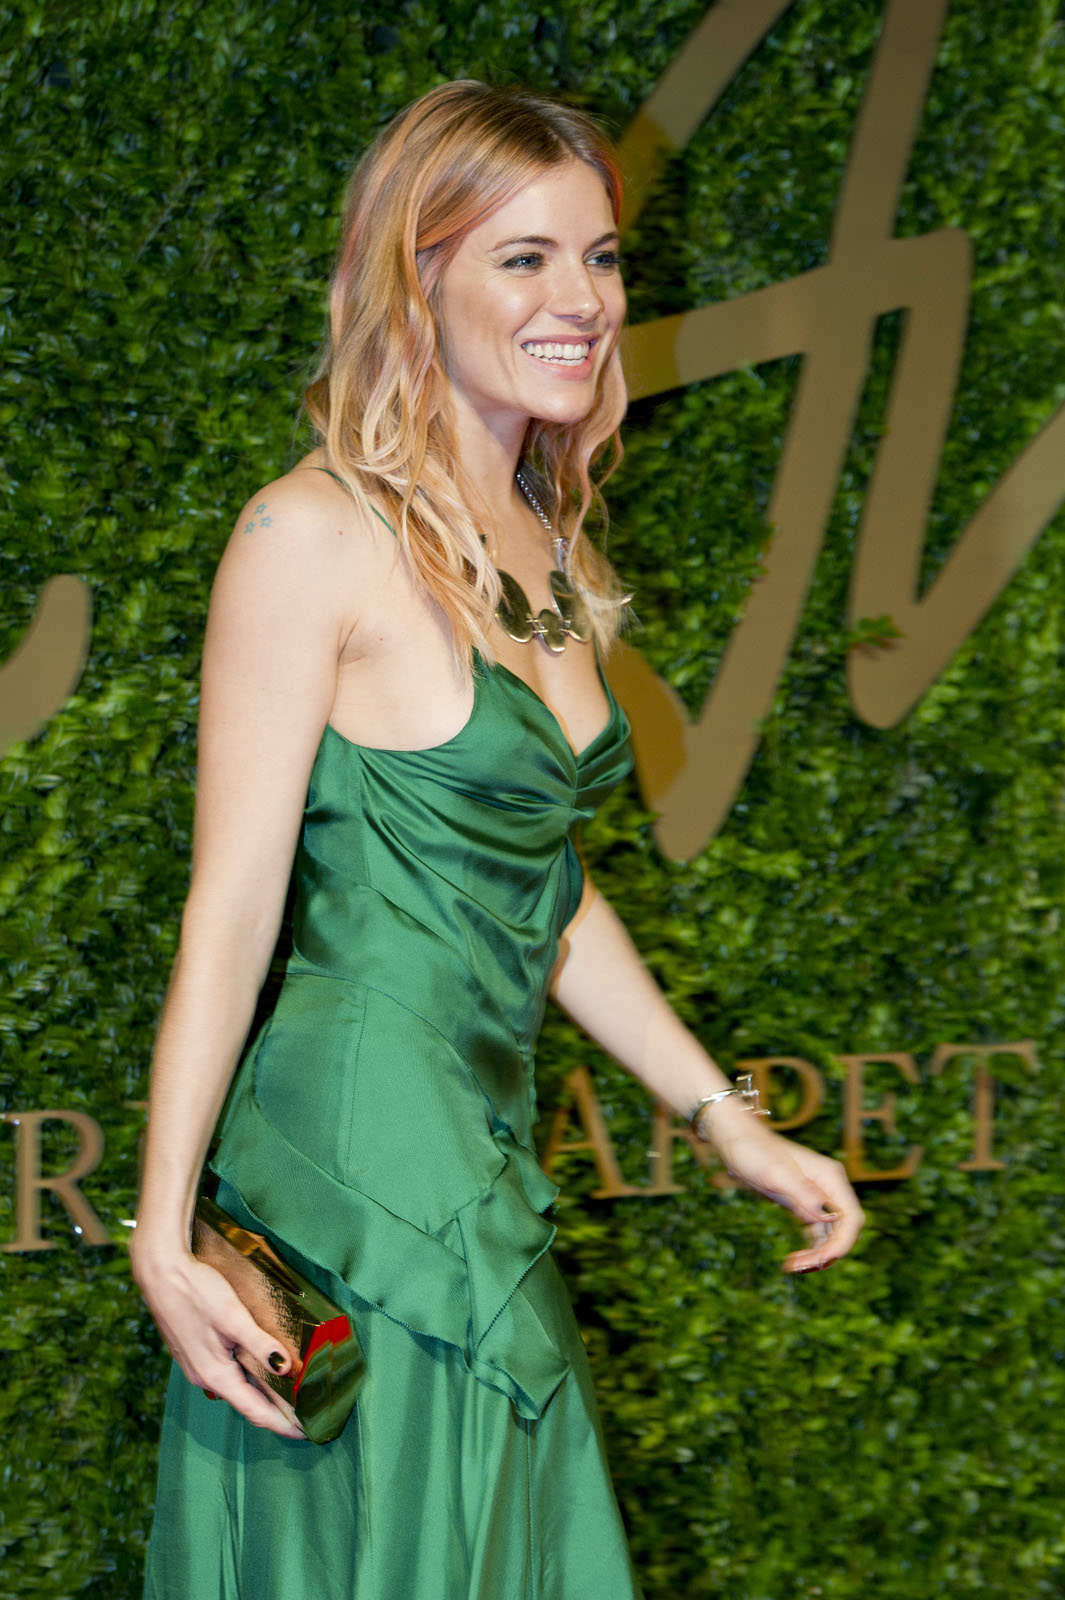 Sienna Miller Photo Gallery